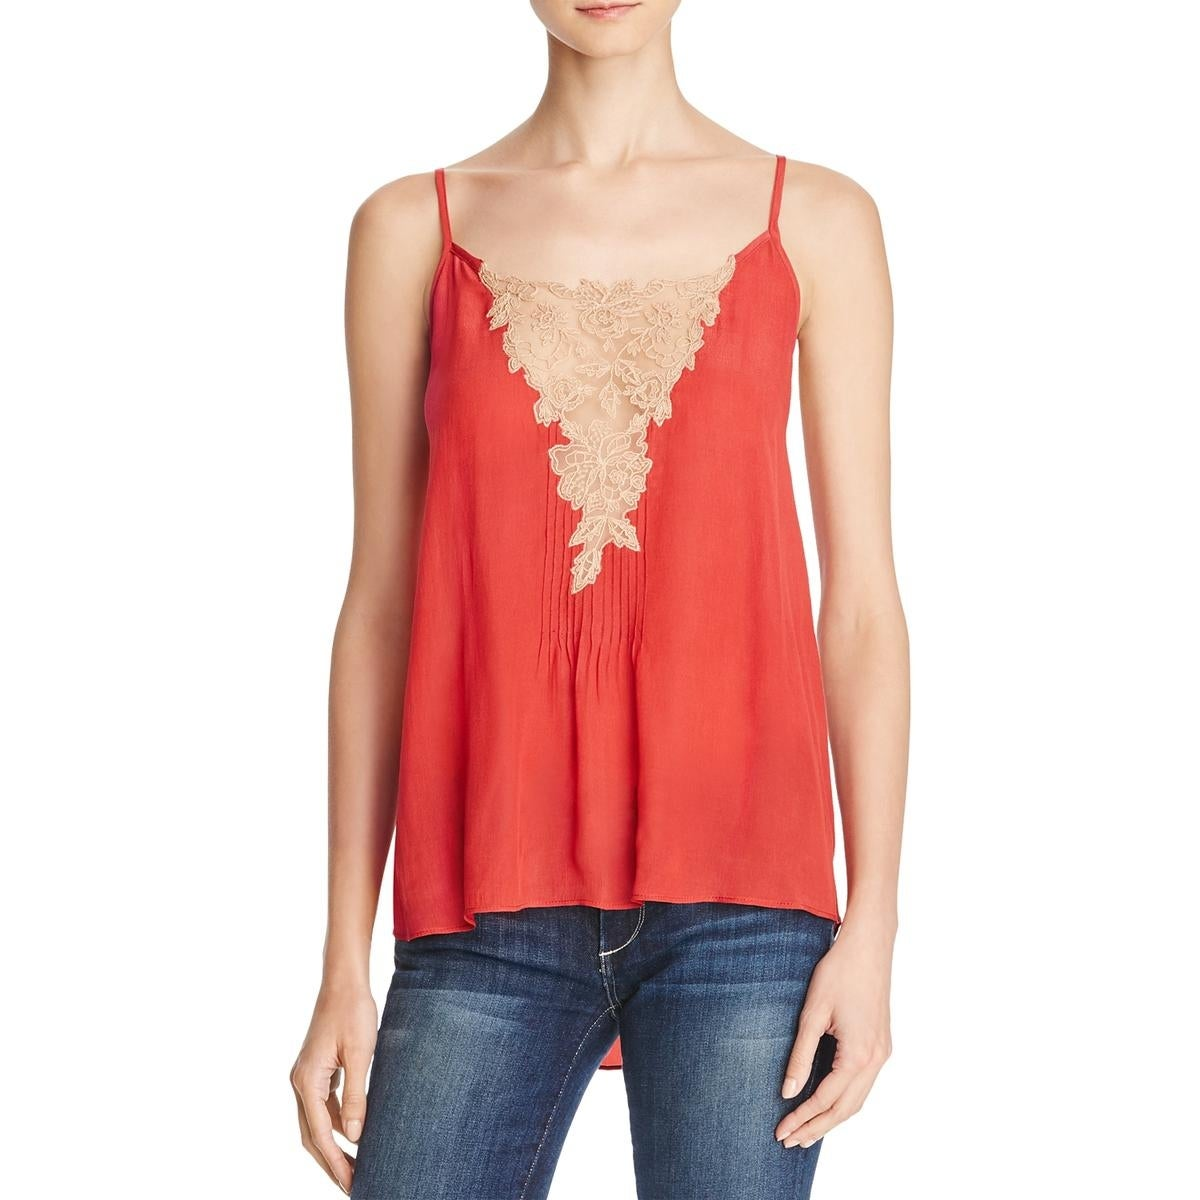 3ce4f822b49a69 Shop Love Sam Womens Tank Top Lace Inset Embroidered - Free Shipping On  Orders Over  45 - Overstock - 18413219